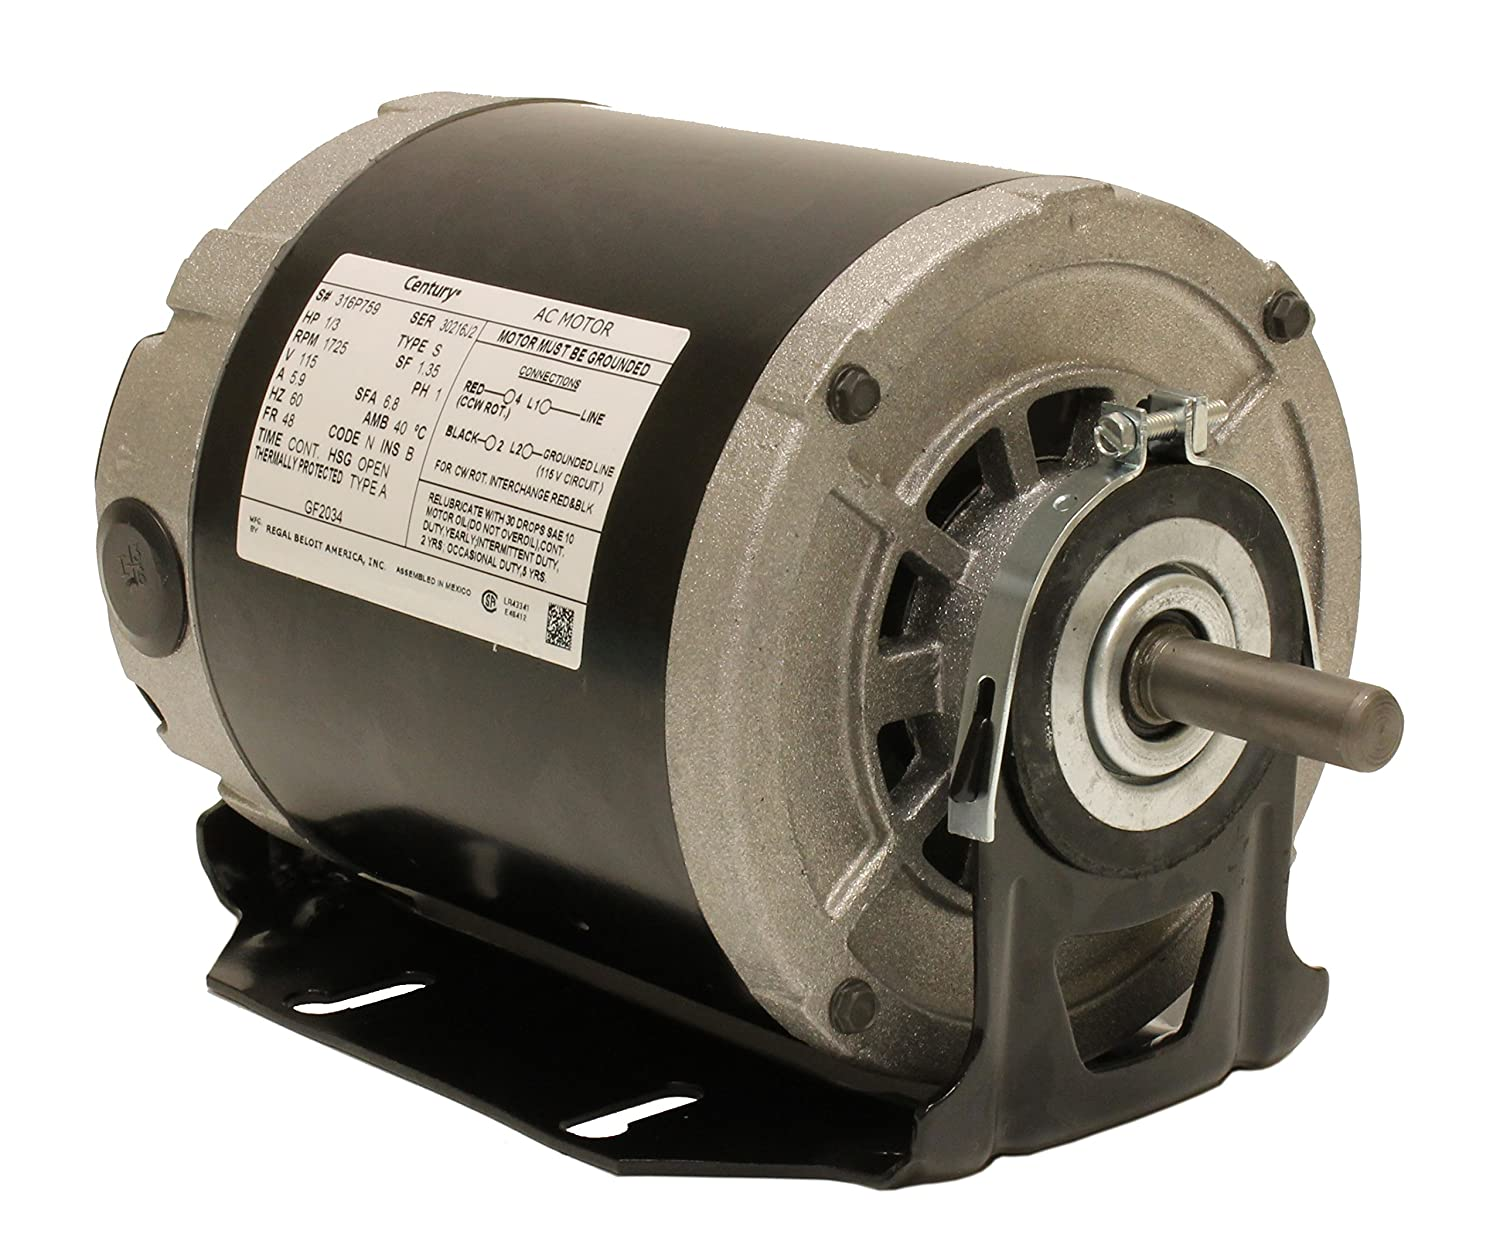 A.O. Smith GF2034 Century Resilient Base Split Phase Electric Motor, 115 Vac, 6.8 A, 1/3 Hp, 1725 Rpm